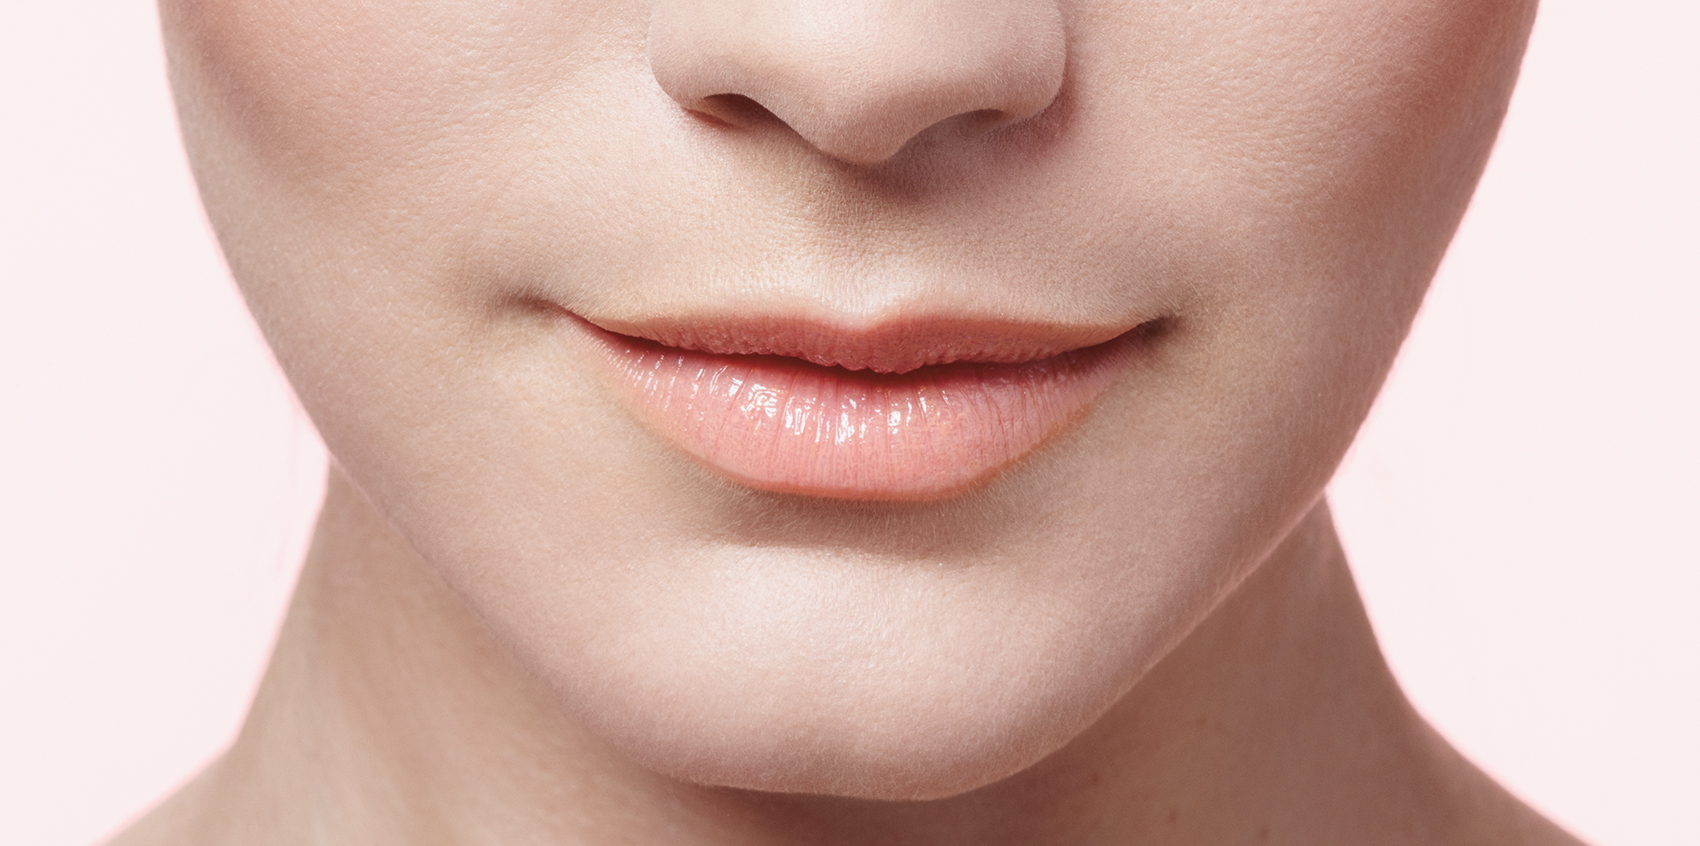 Close-up of natural lips